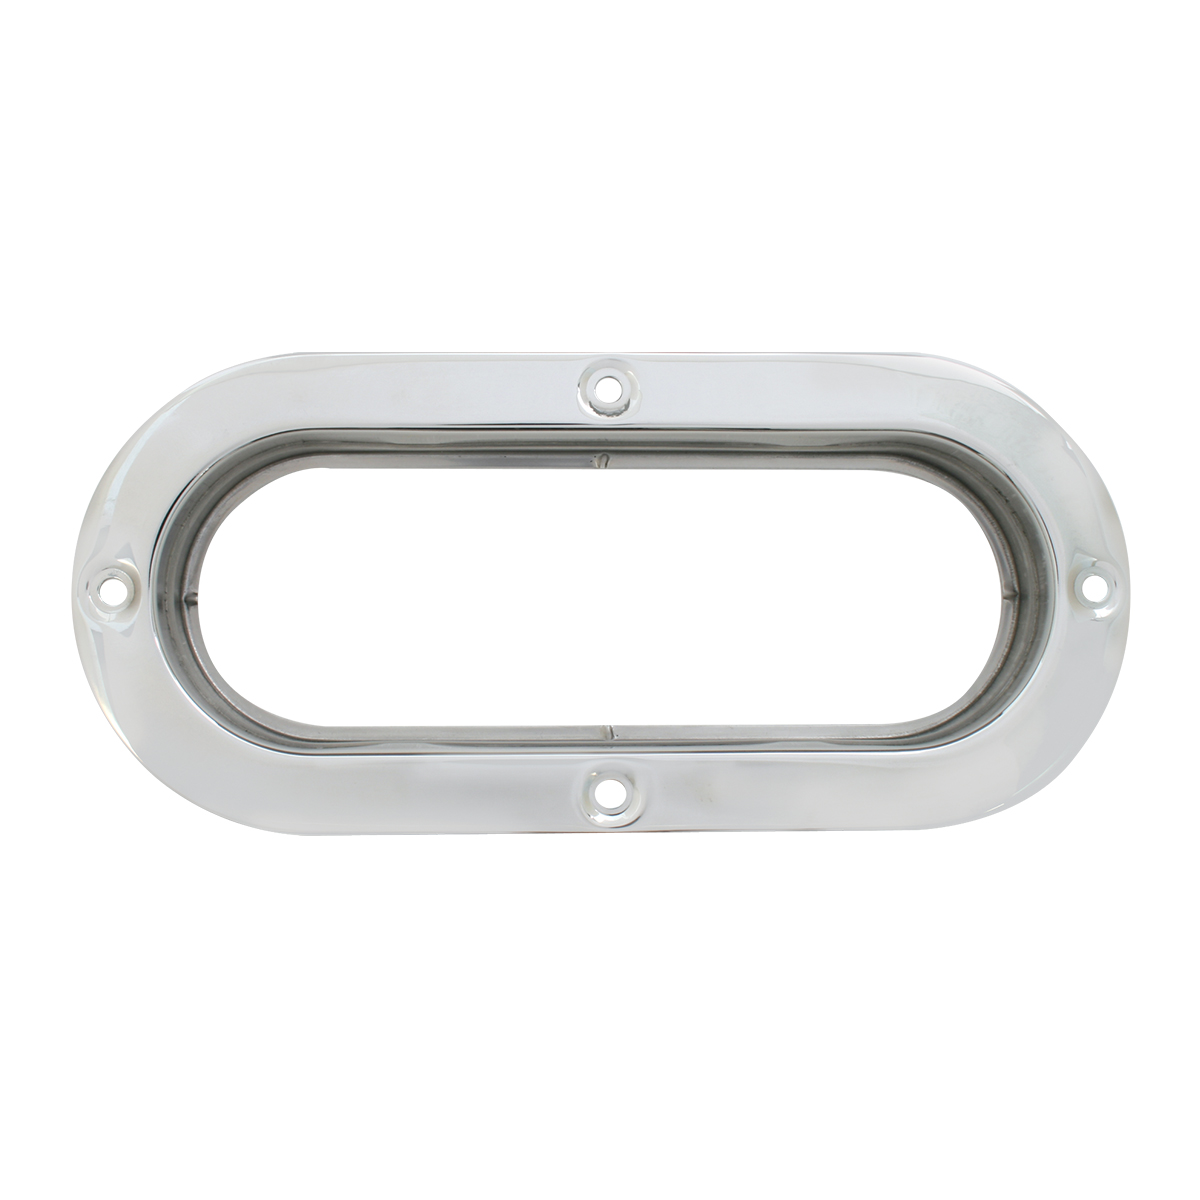 87146 Stainless Steel Flange Mount Bezel for Large Oval Light